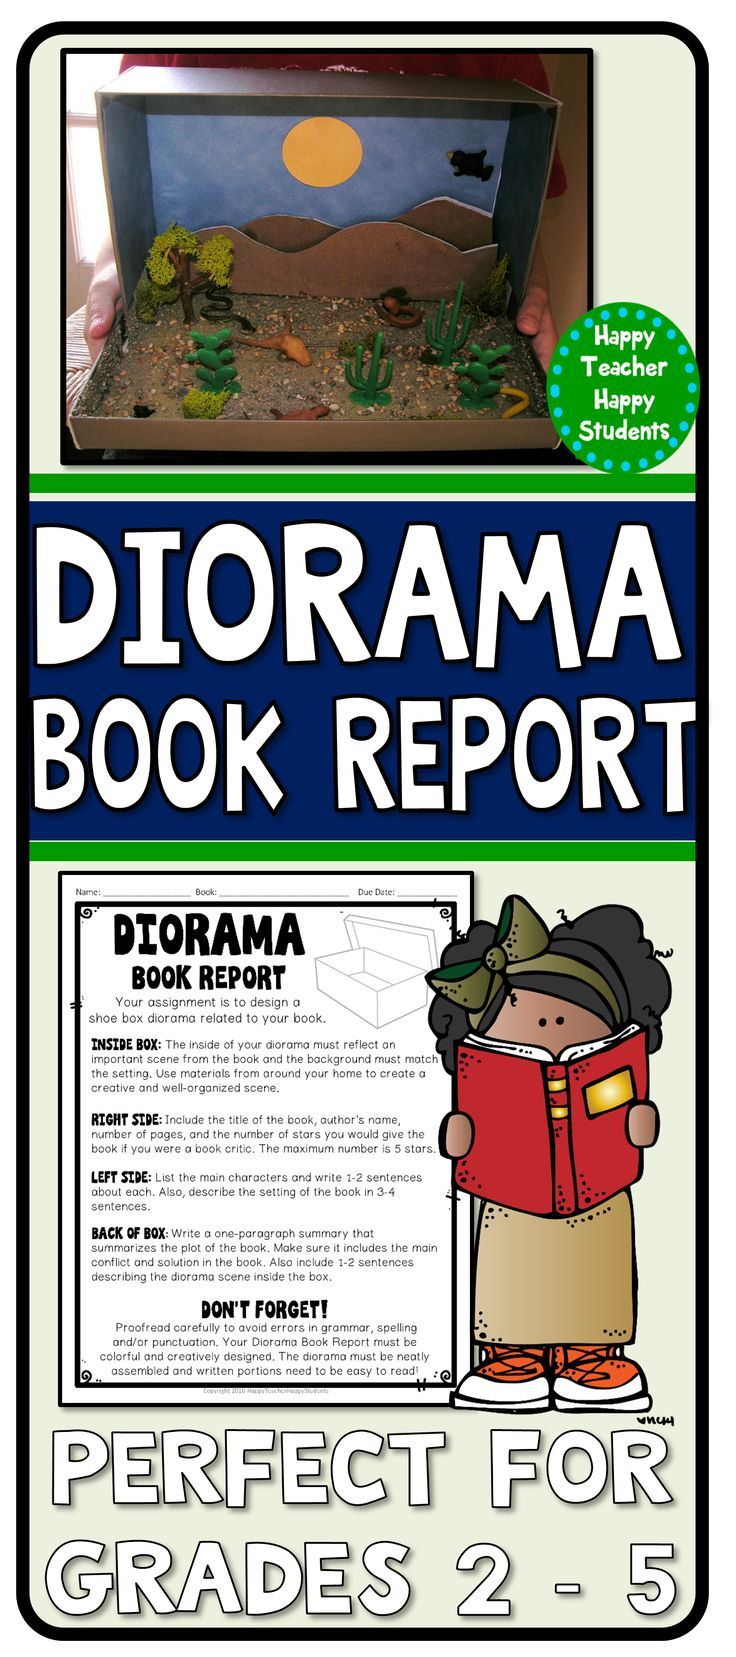 diorama book report directions Diorama book report instructions to complete the diorama correctly the inside of the box should be lined with colored construction paper, or painted.